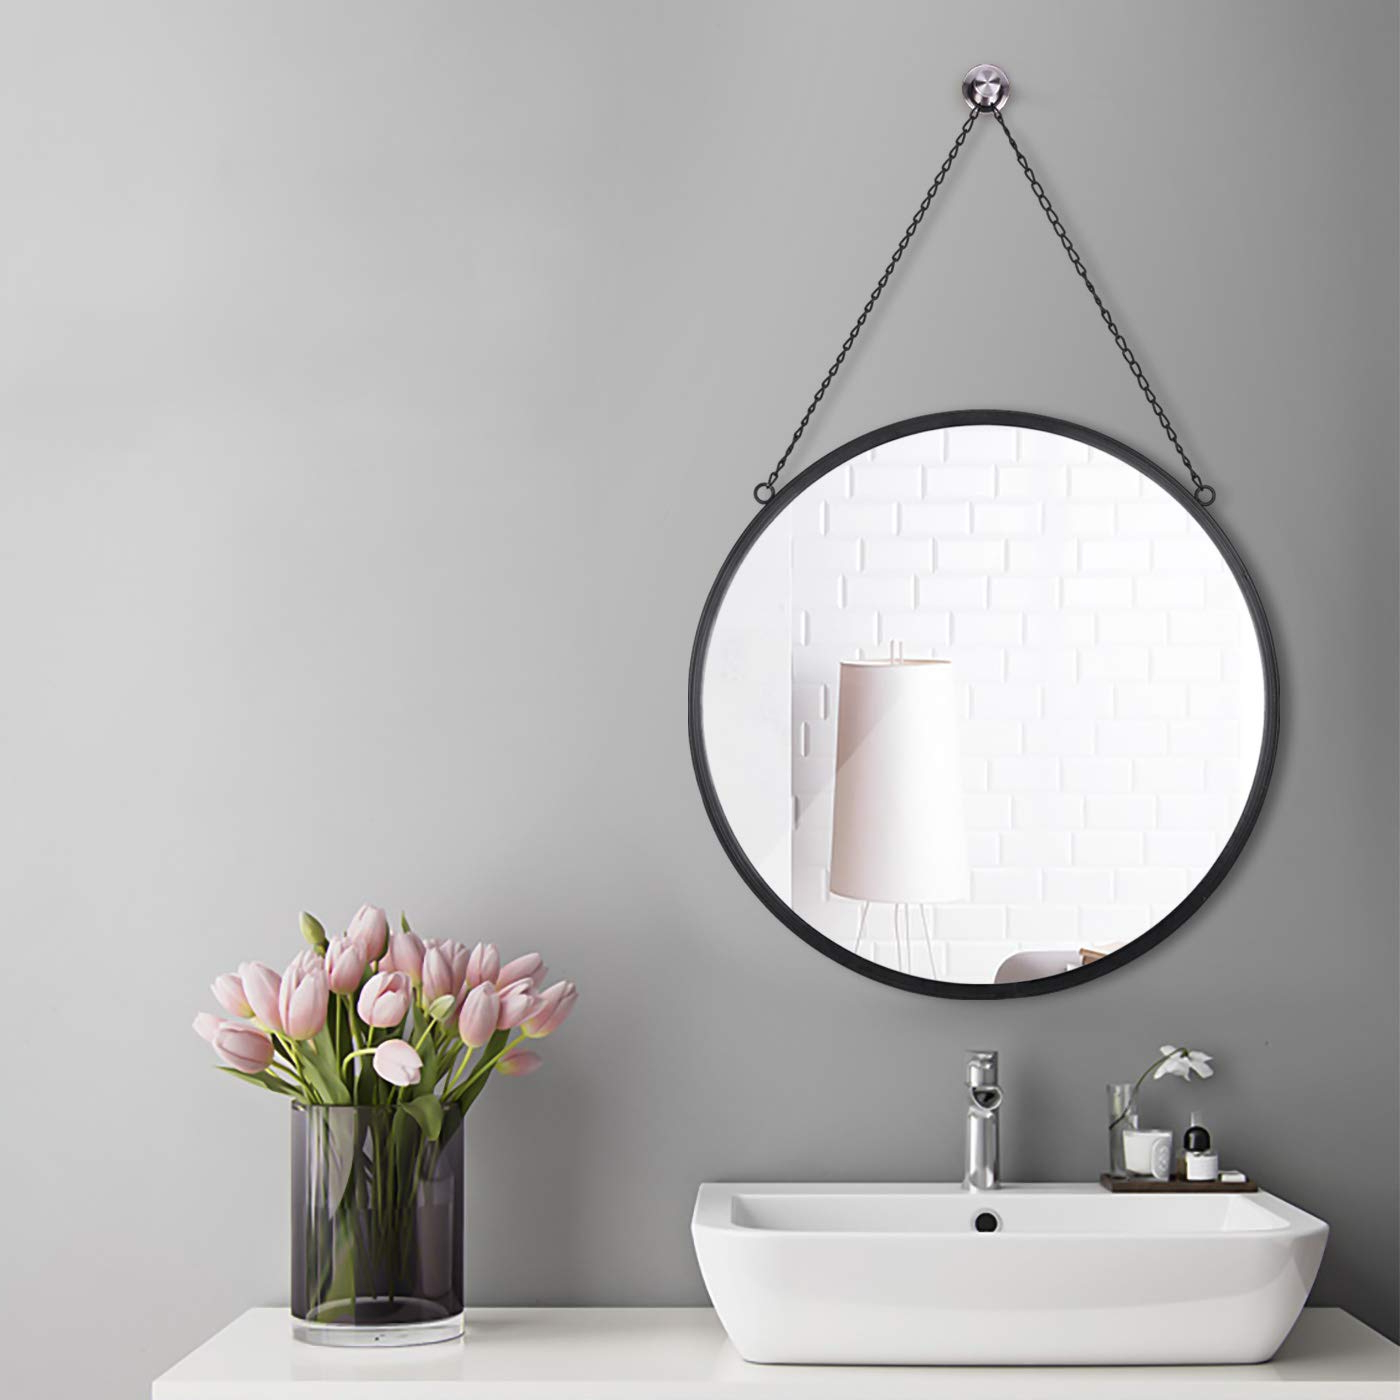 """Wall Mirror For Bathroom With Regard To Most Up To Date Plinrise Round Wall Mirror, Modern Metal Framed Mirror, Decorative Hanging Vanity Mirror For Bedroom, Bathroom And Living Room, Size 20"""", Black (View 18 of 20)"""